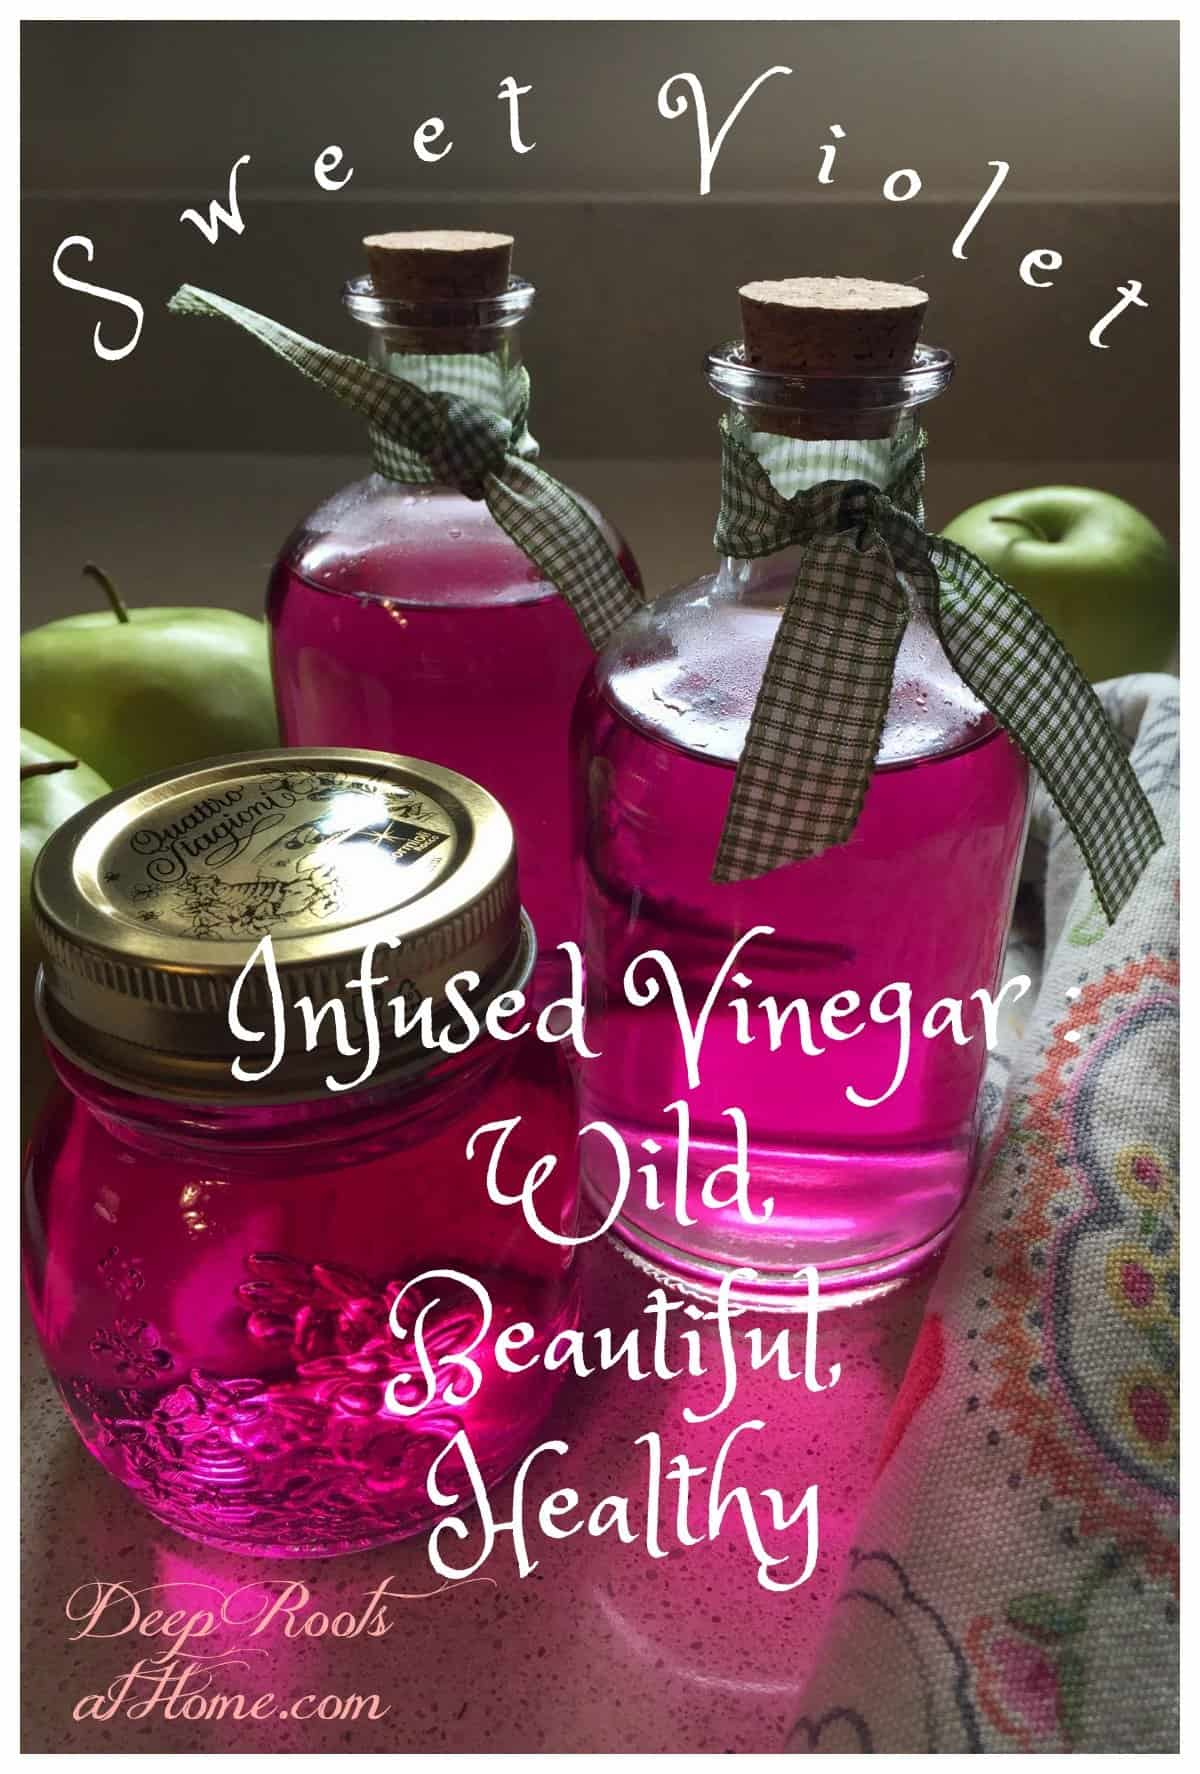 Sweet Violet Infused Vinegar: Wild, Beautiful, Healthy. Bottled floral vinegar